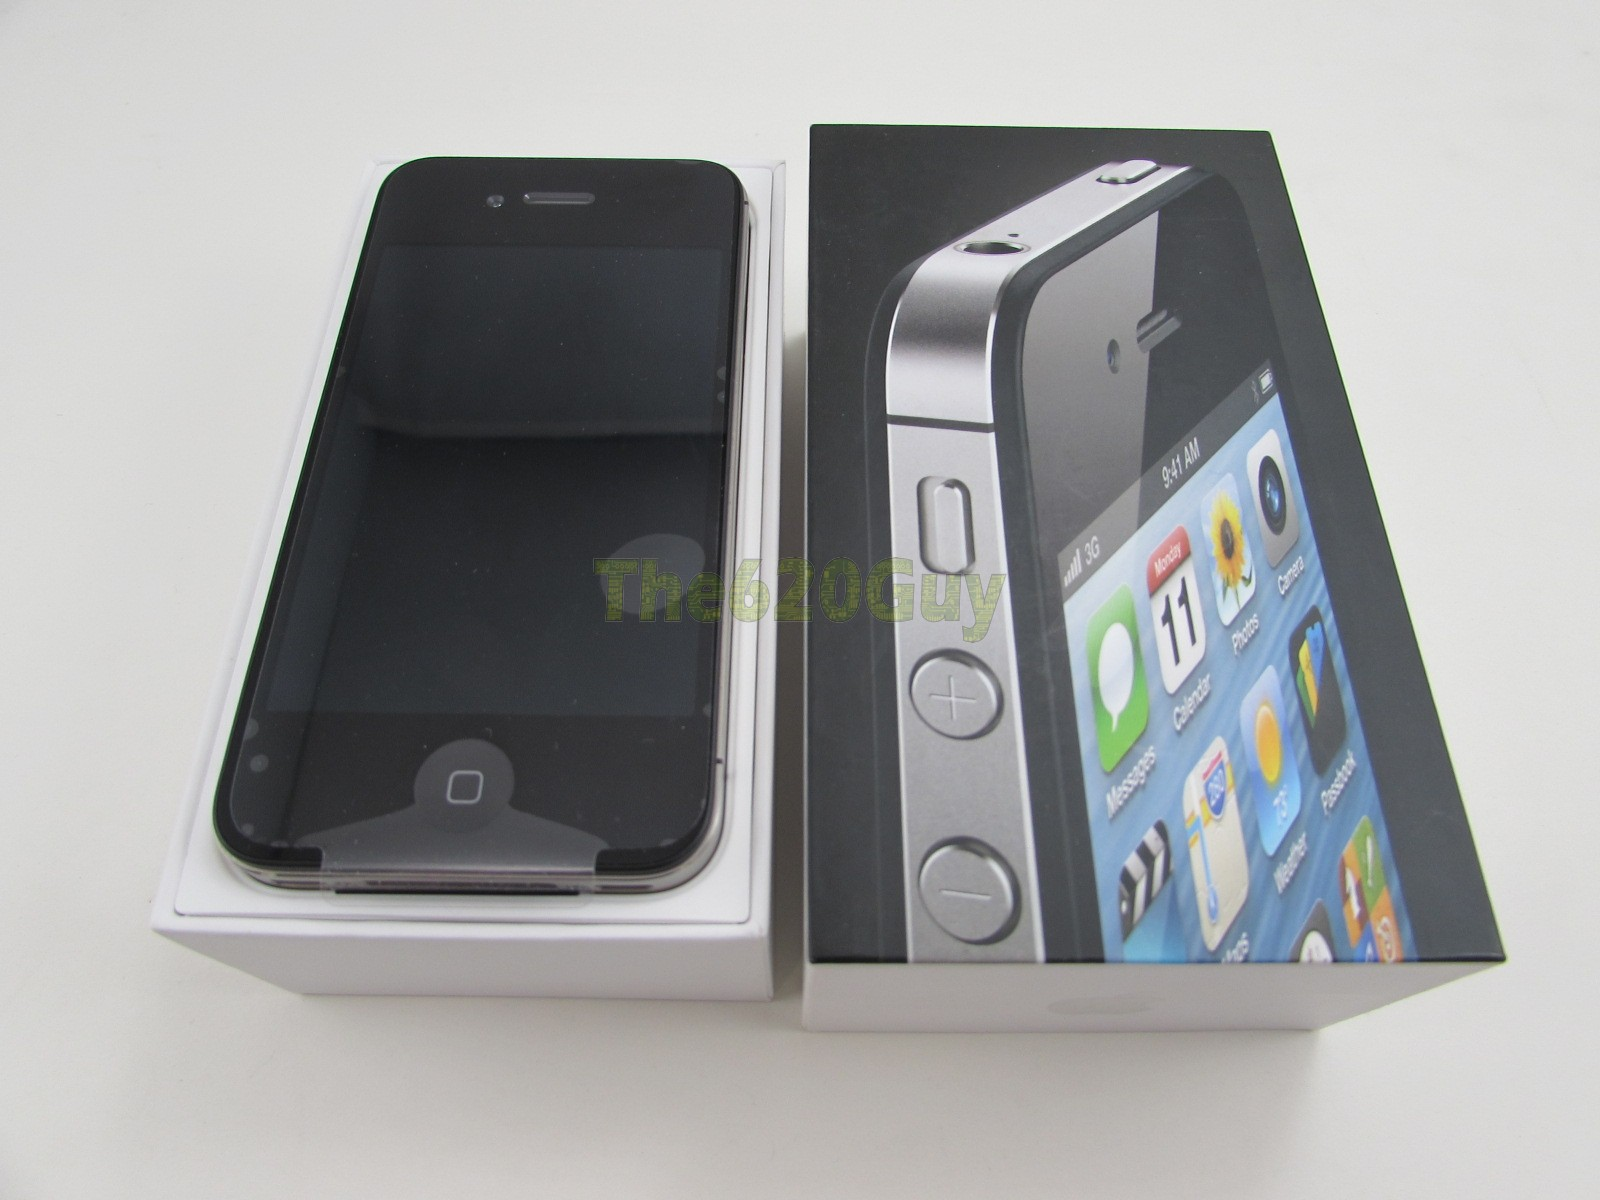 iphone model a1349 apple iphone 4 8gb verizon md439ll a a1349 5mp smartphone 12043